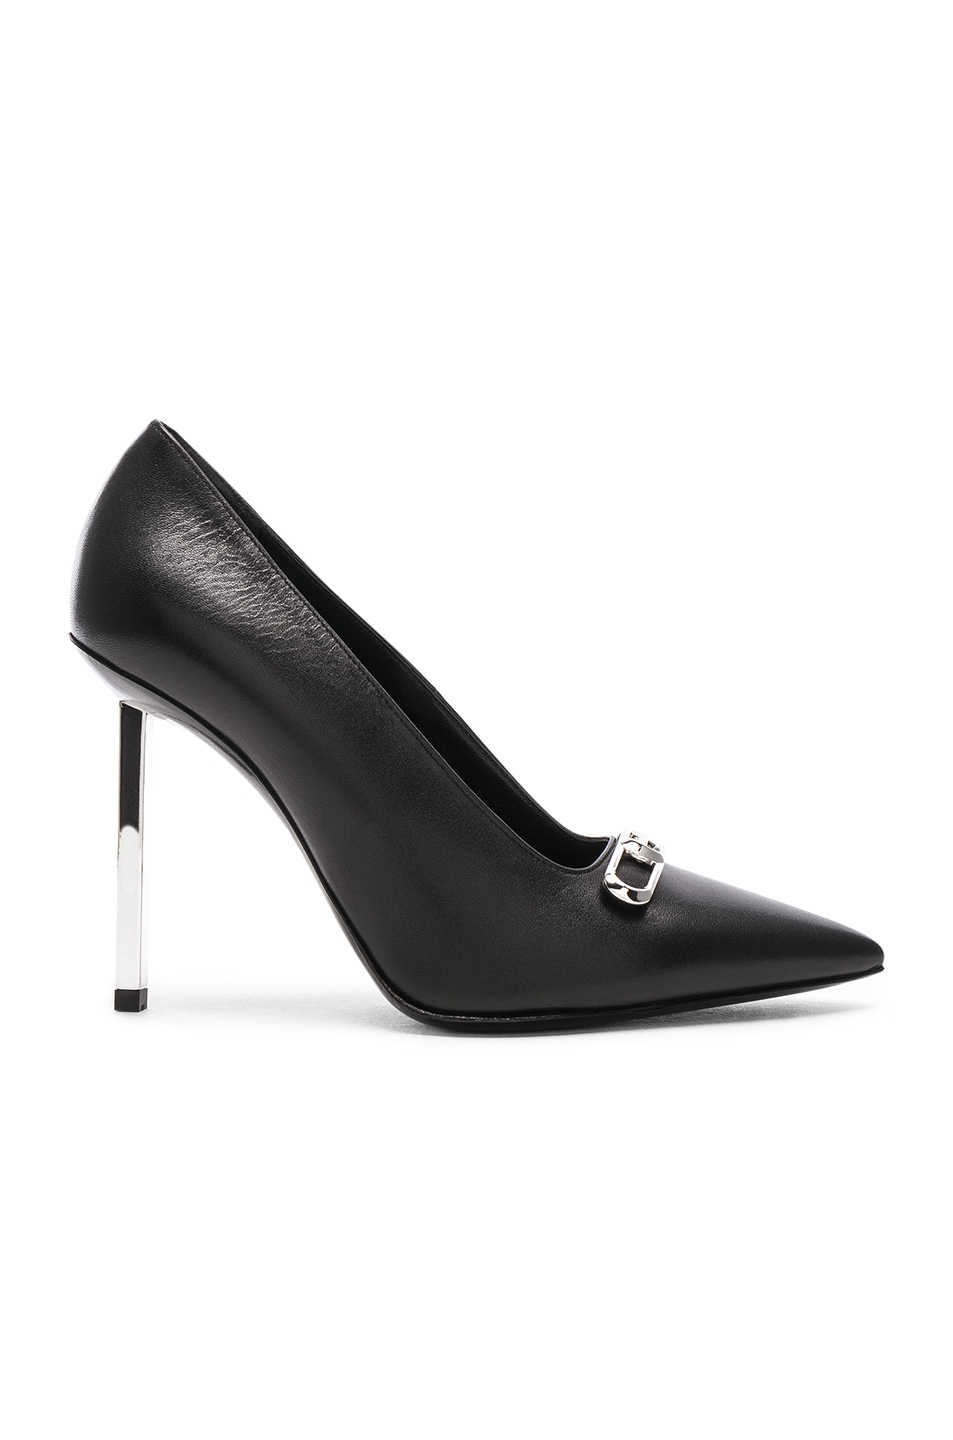 Image 1 of Alexander Wang CEO Pump in Black